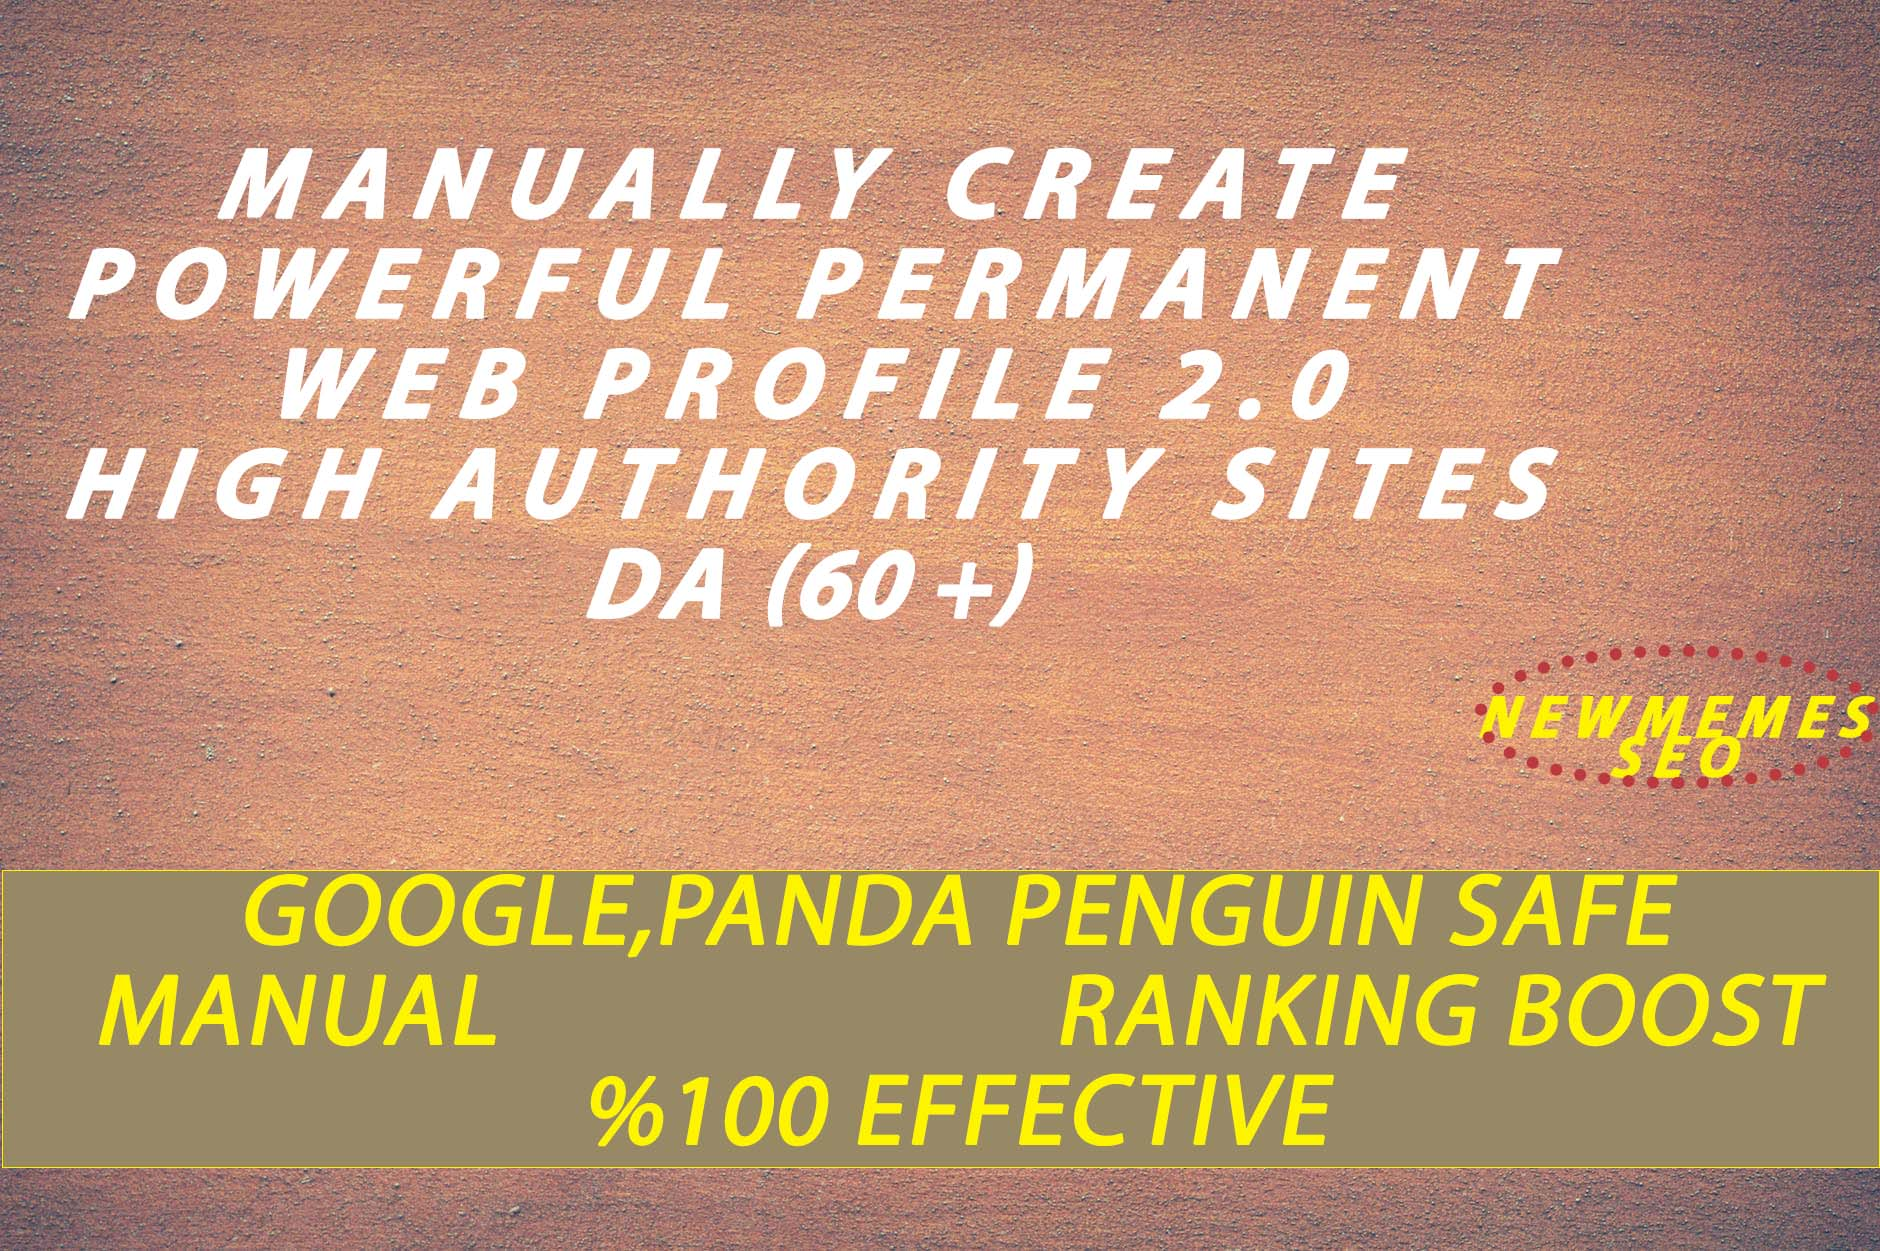 Create 10 Manual HIGH Authority Backlinks And Trust Links (DA 60+)